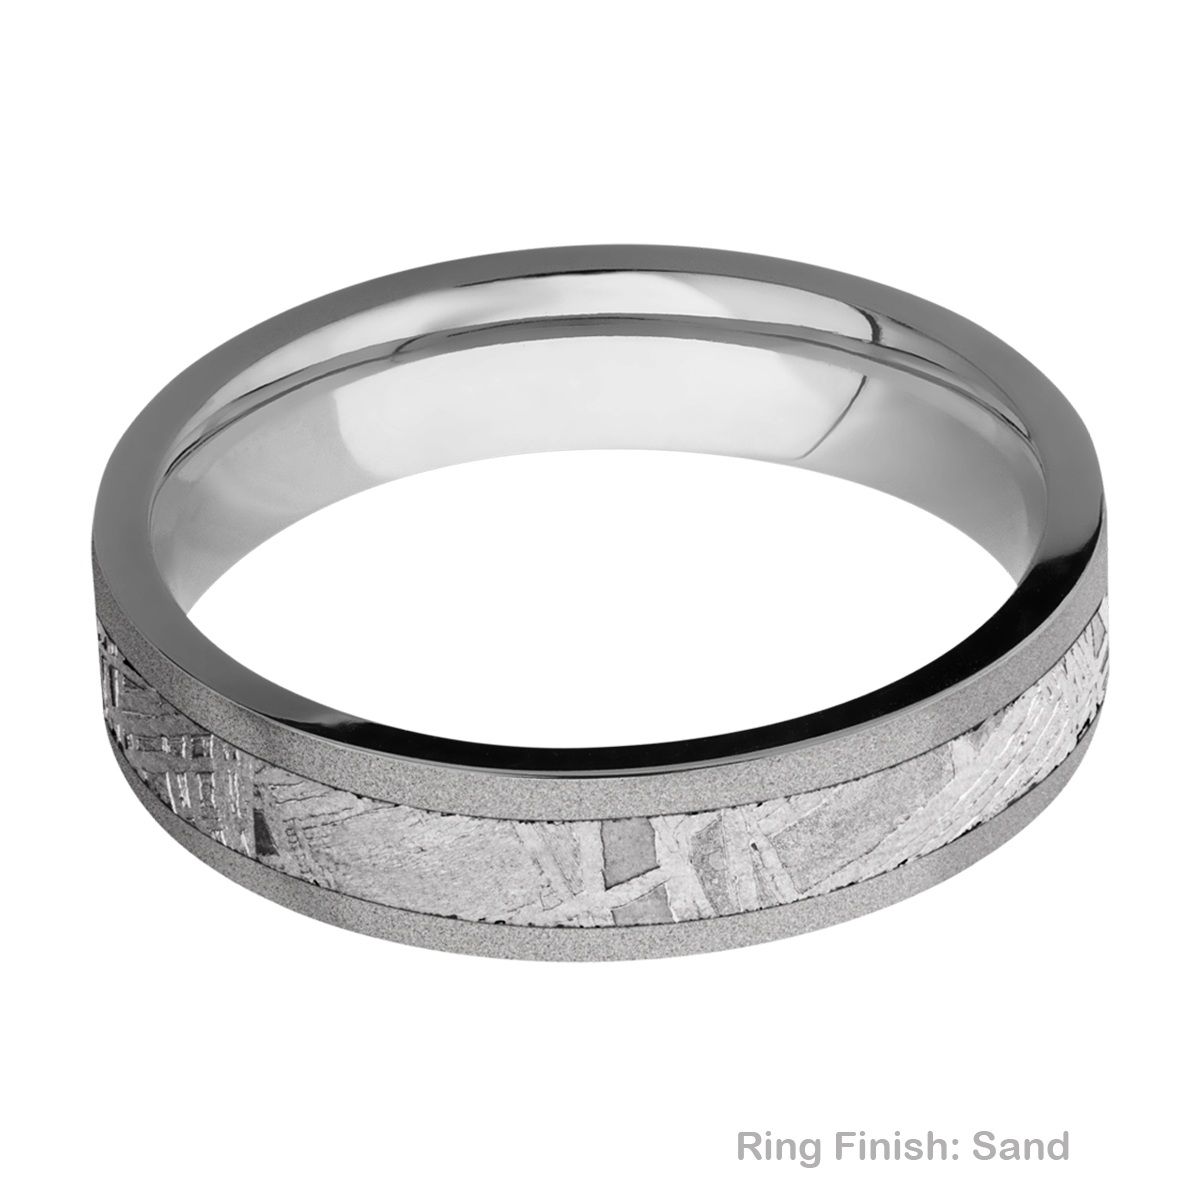 Lashbrook 5F13/METEORITE Titanium Wedding Ring or Band Alternative View 4